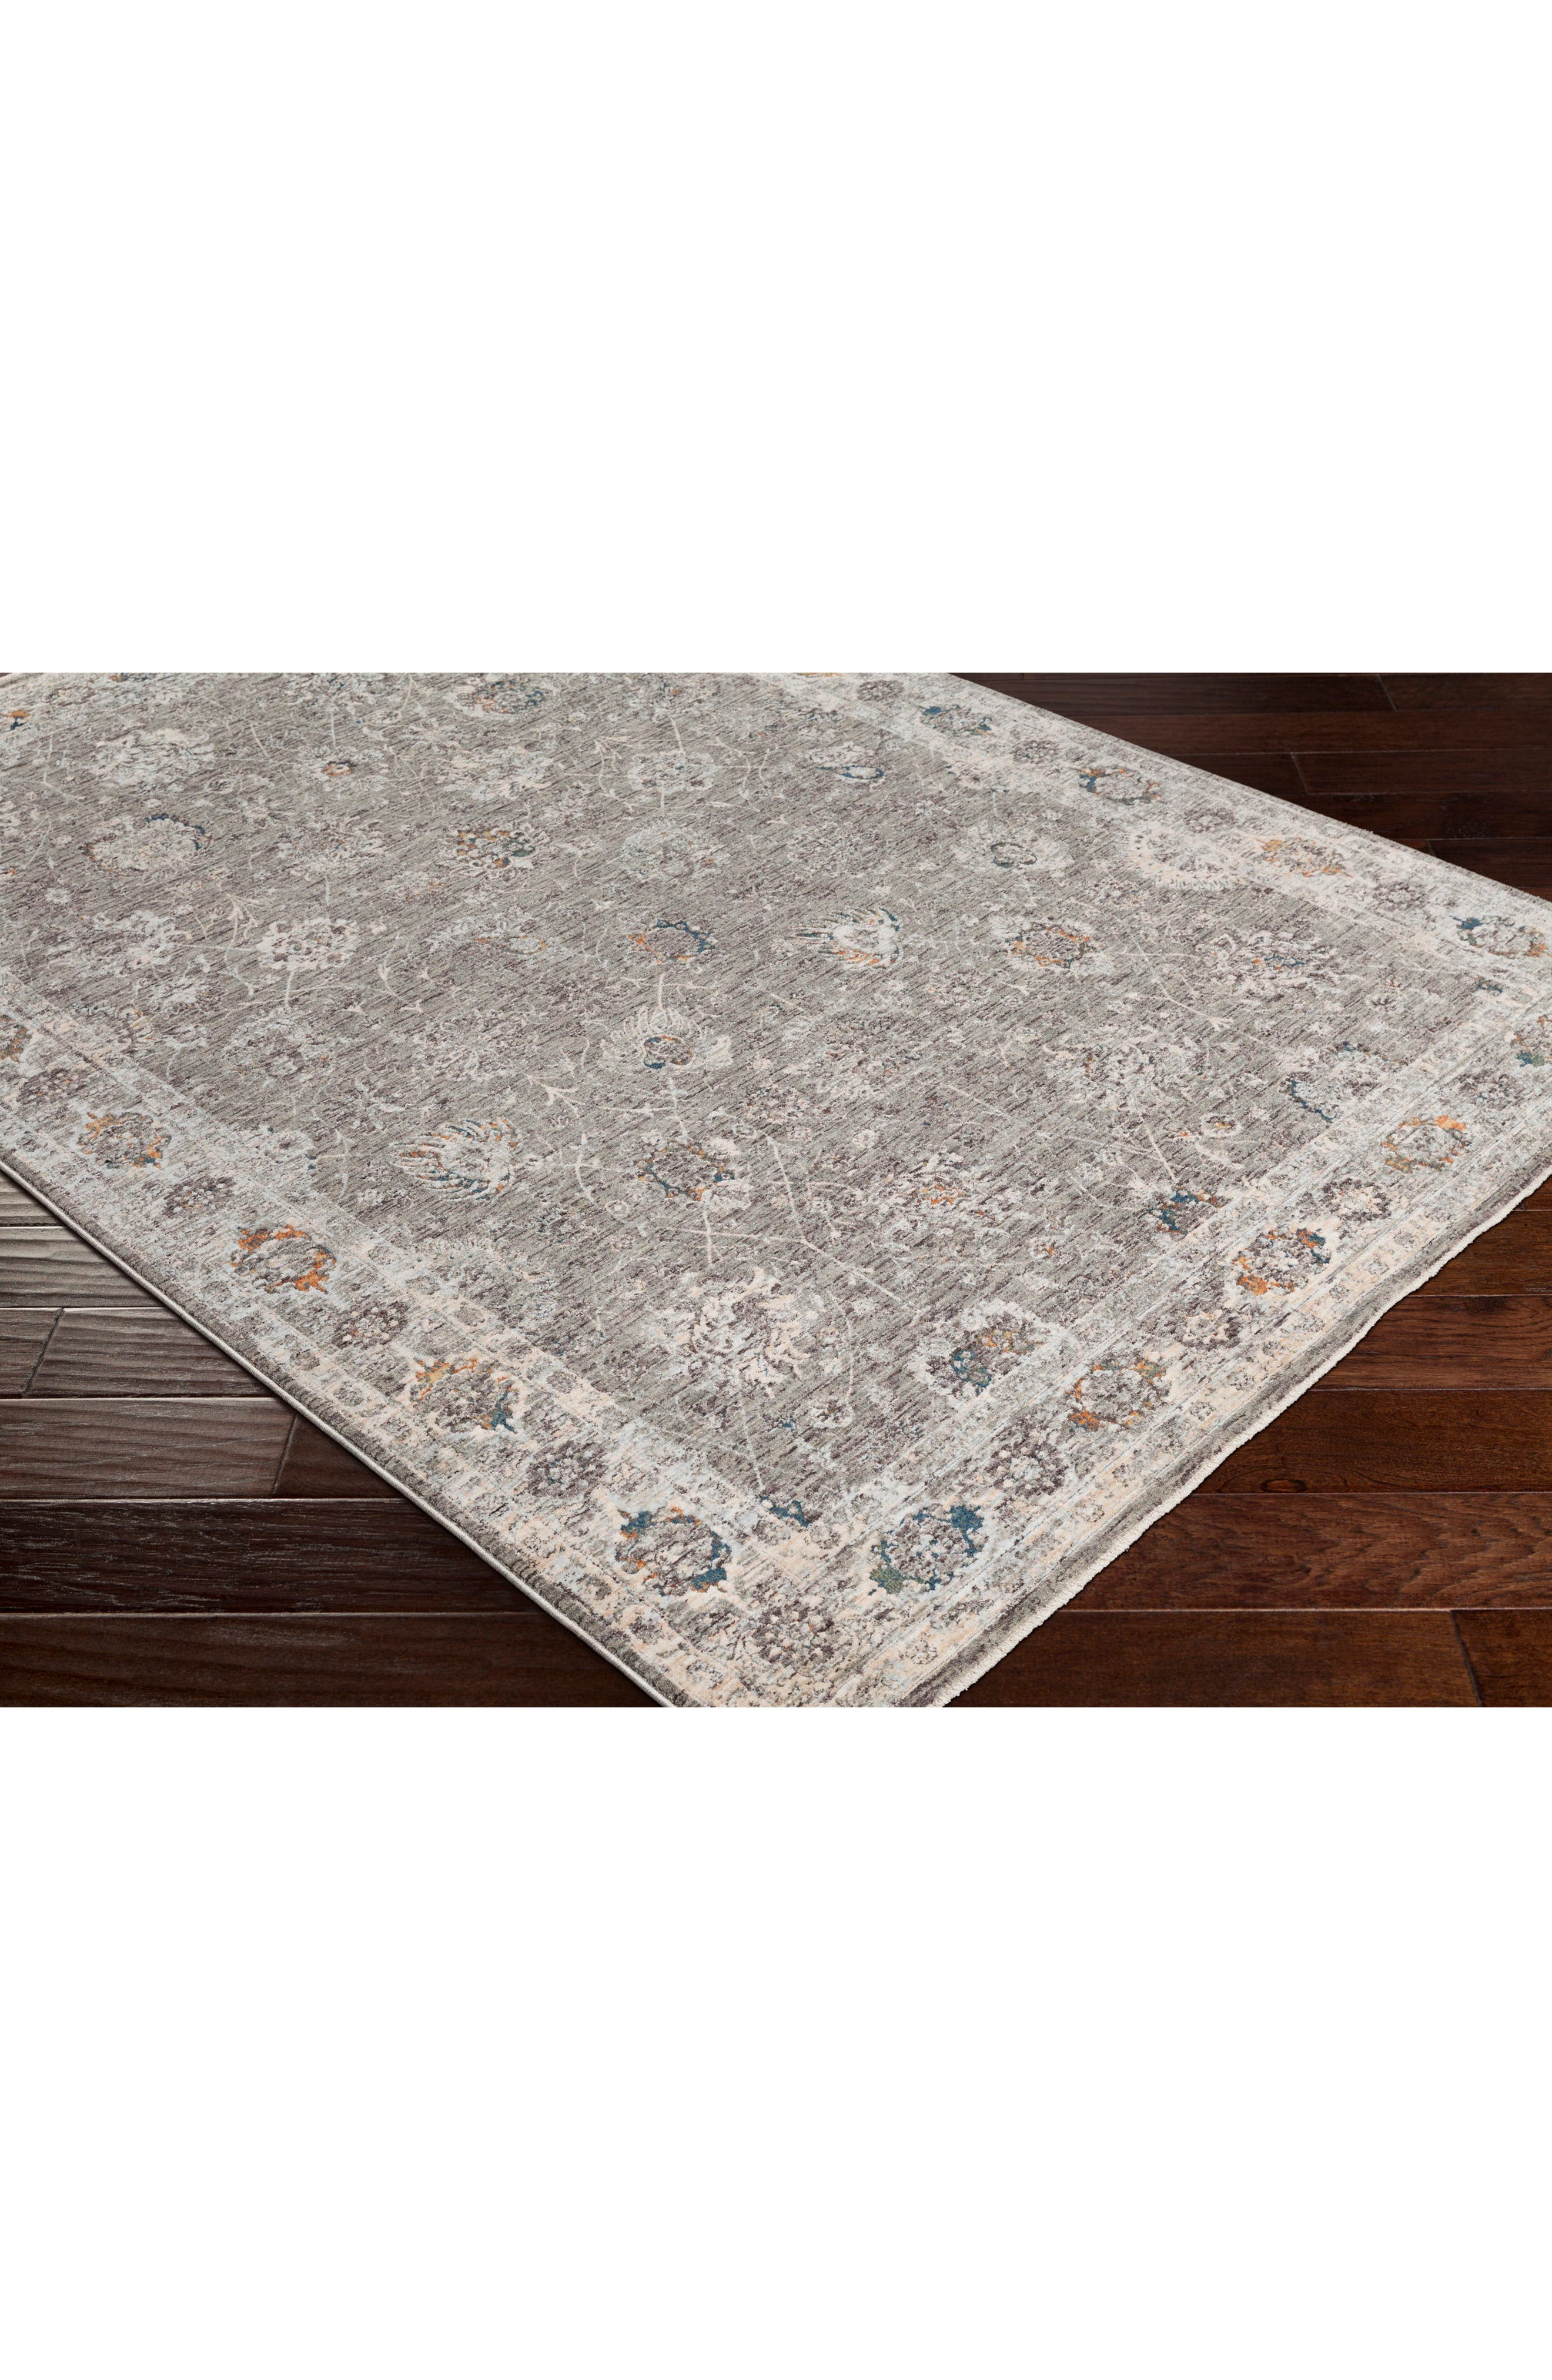 Presidential Floral Border Area Rug,                             Alternate thumbnail 6, color,                             200